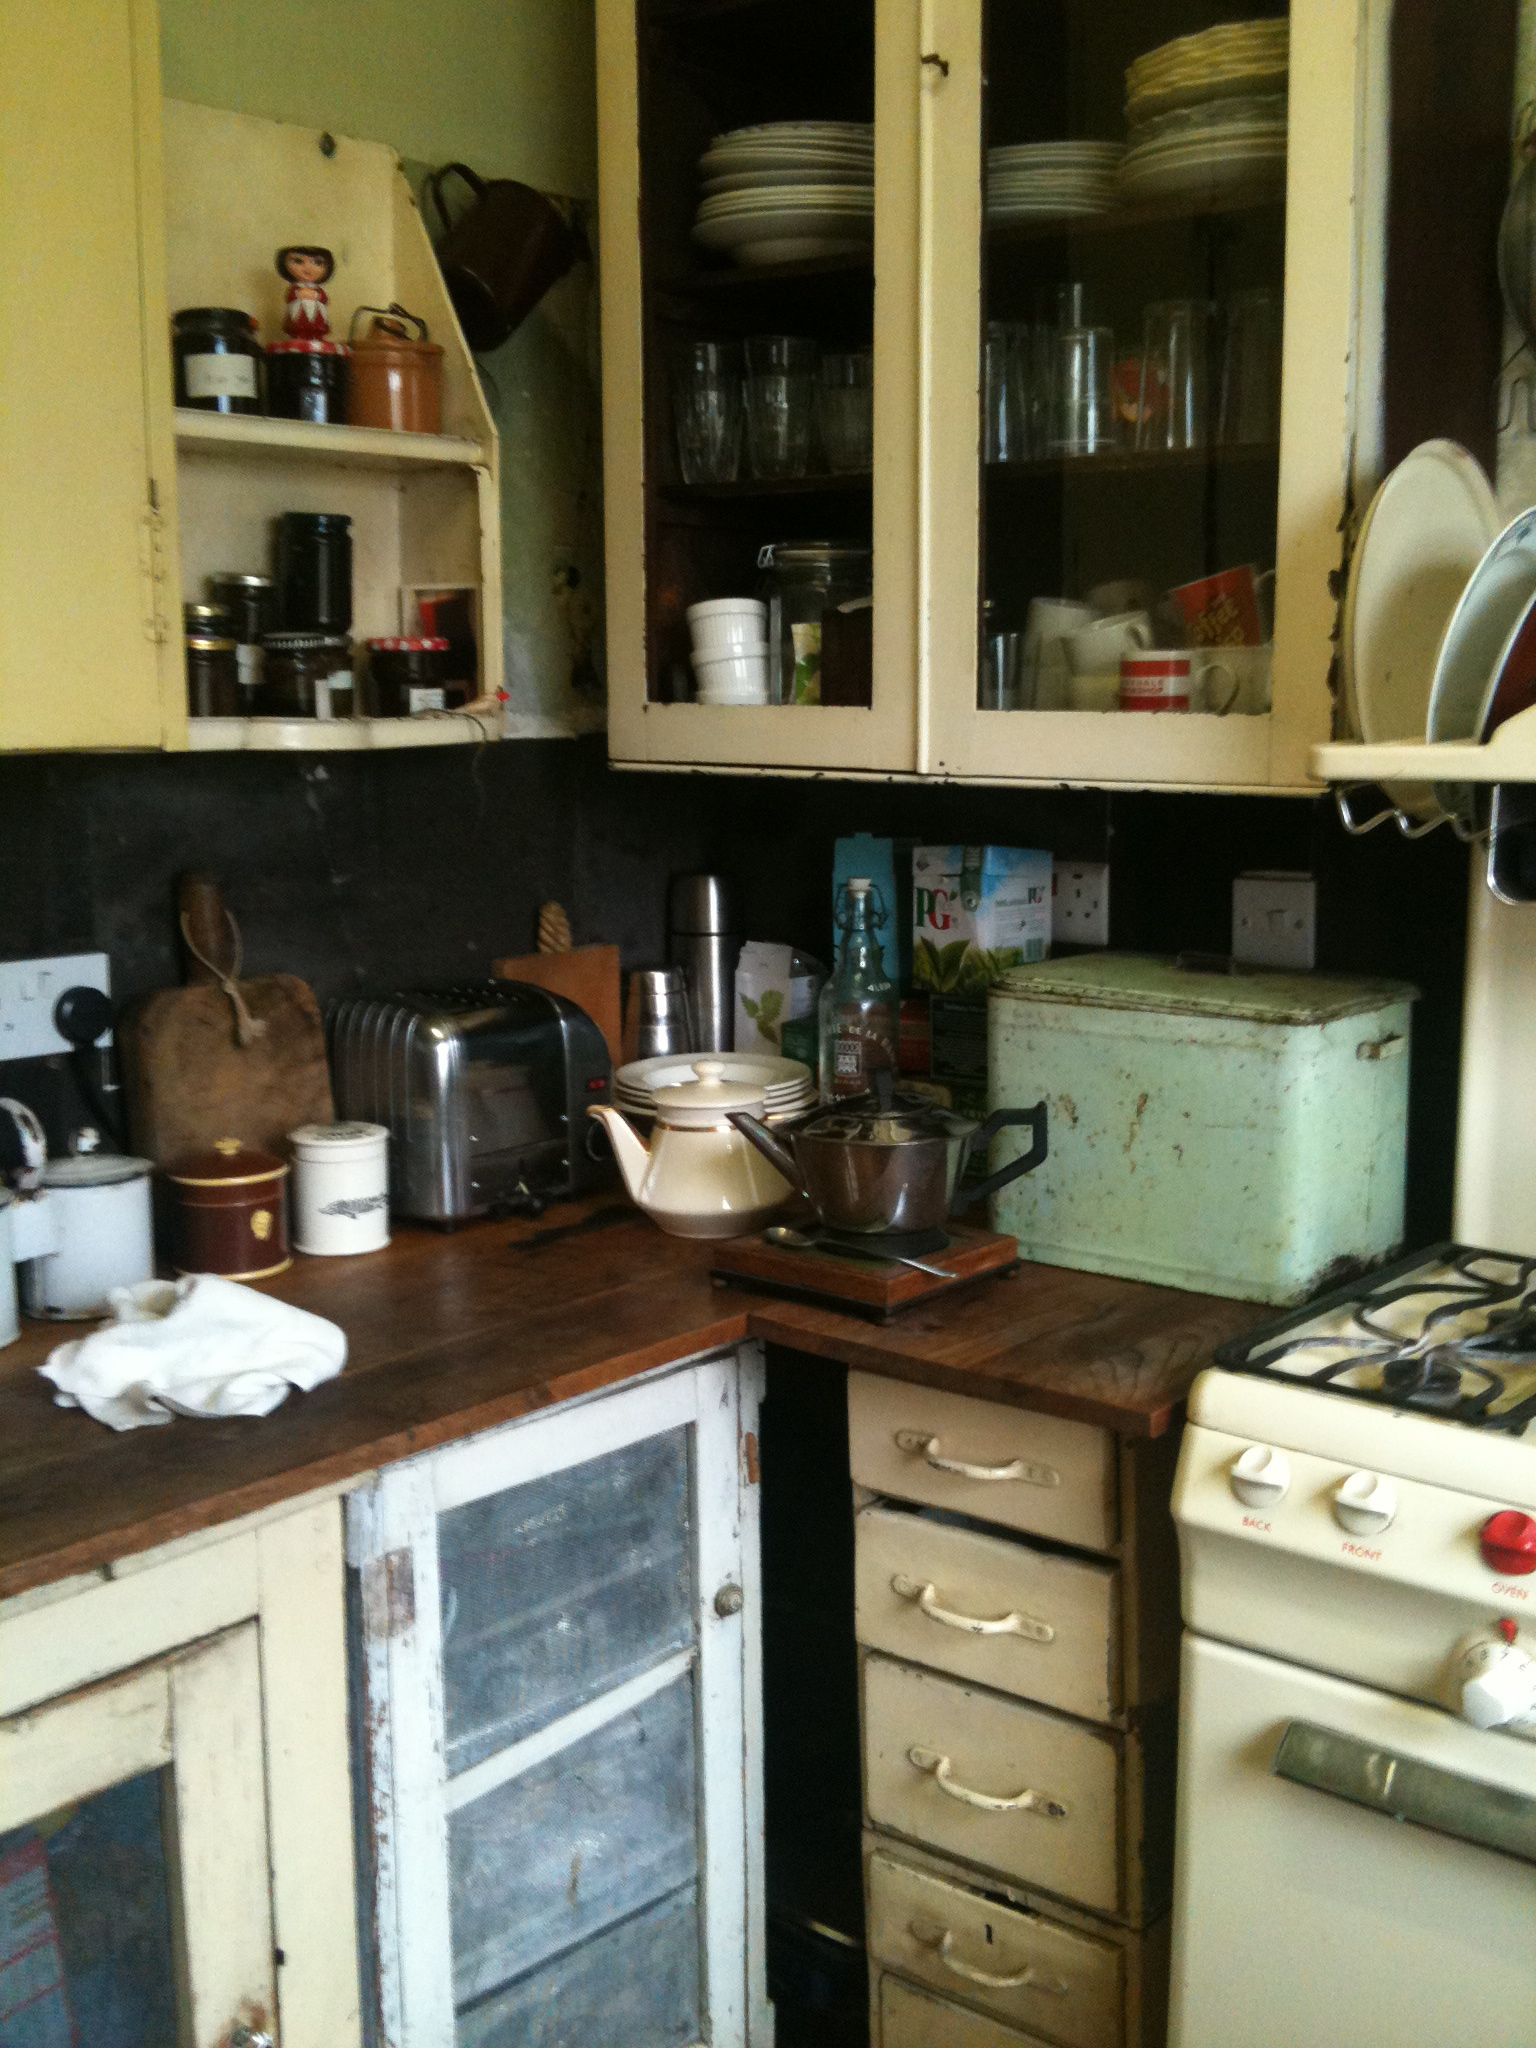 The recycled house in Sydenham old kitchen